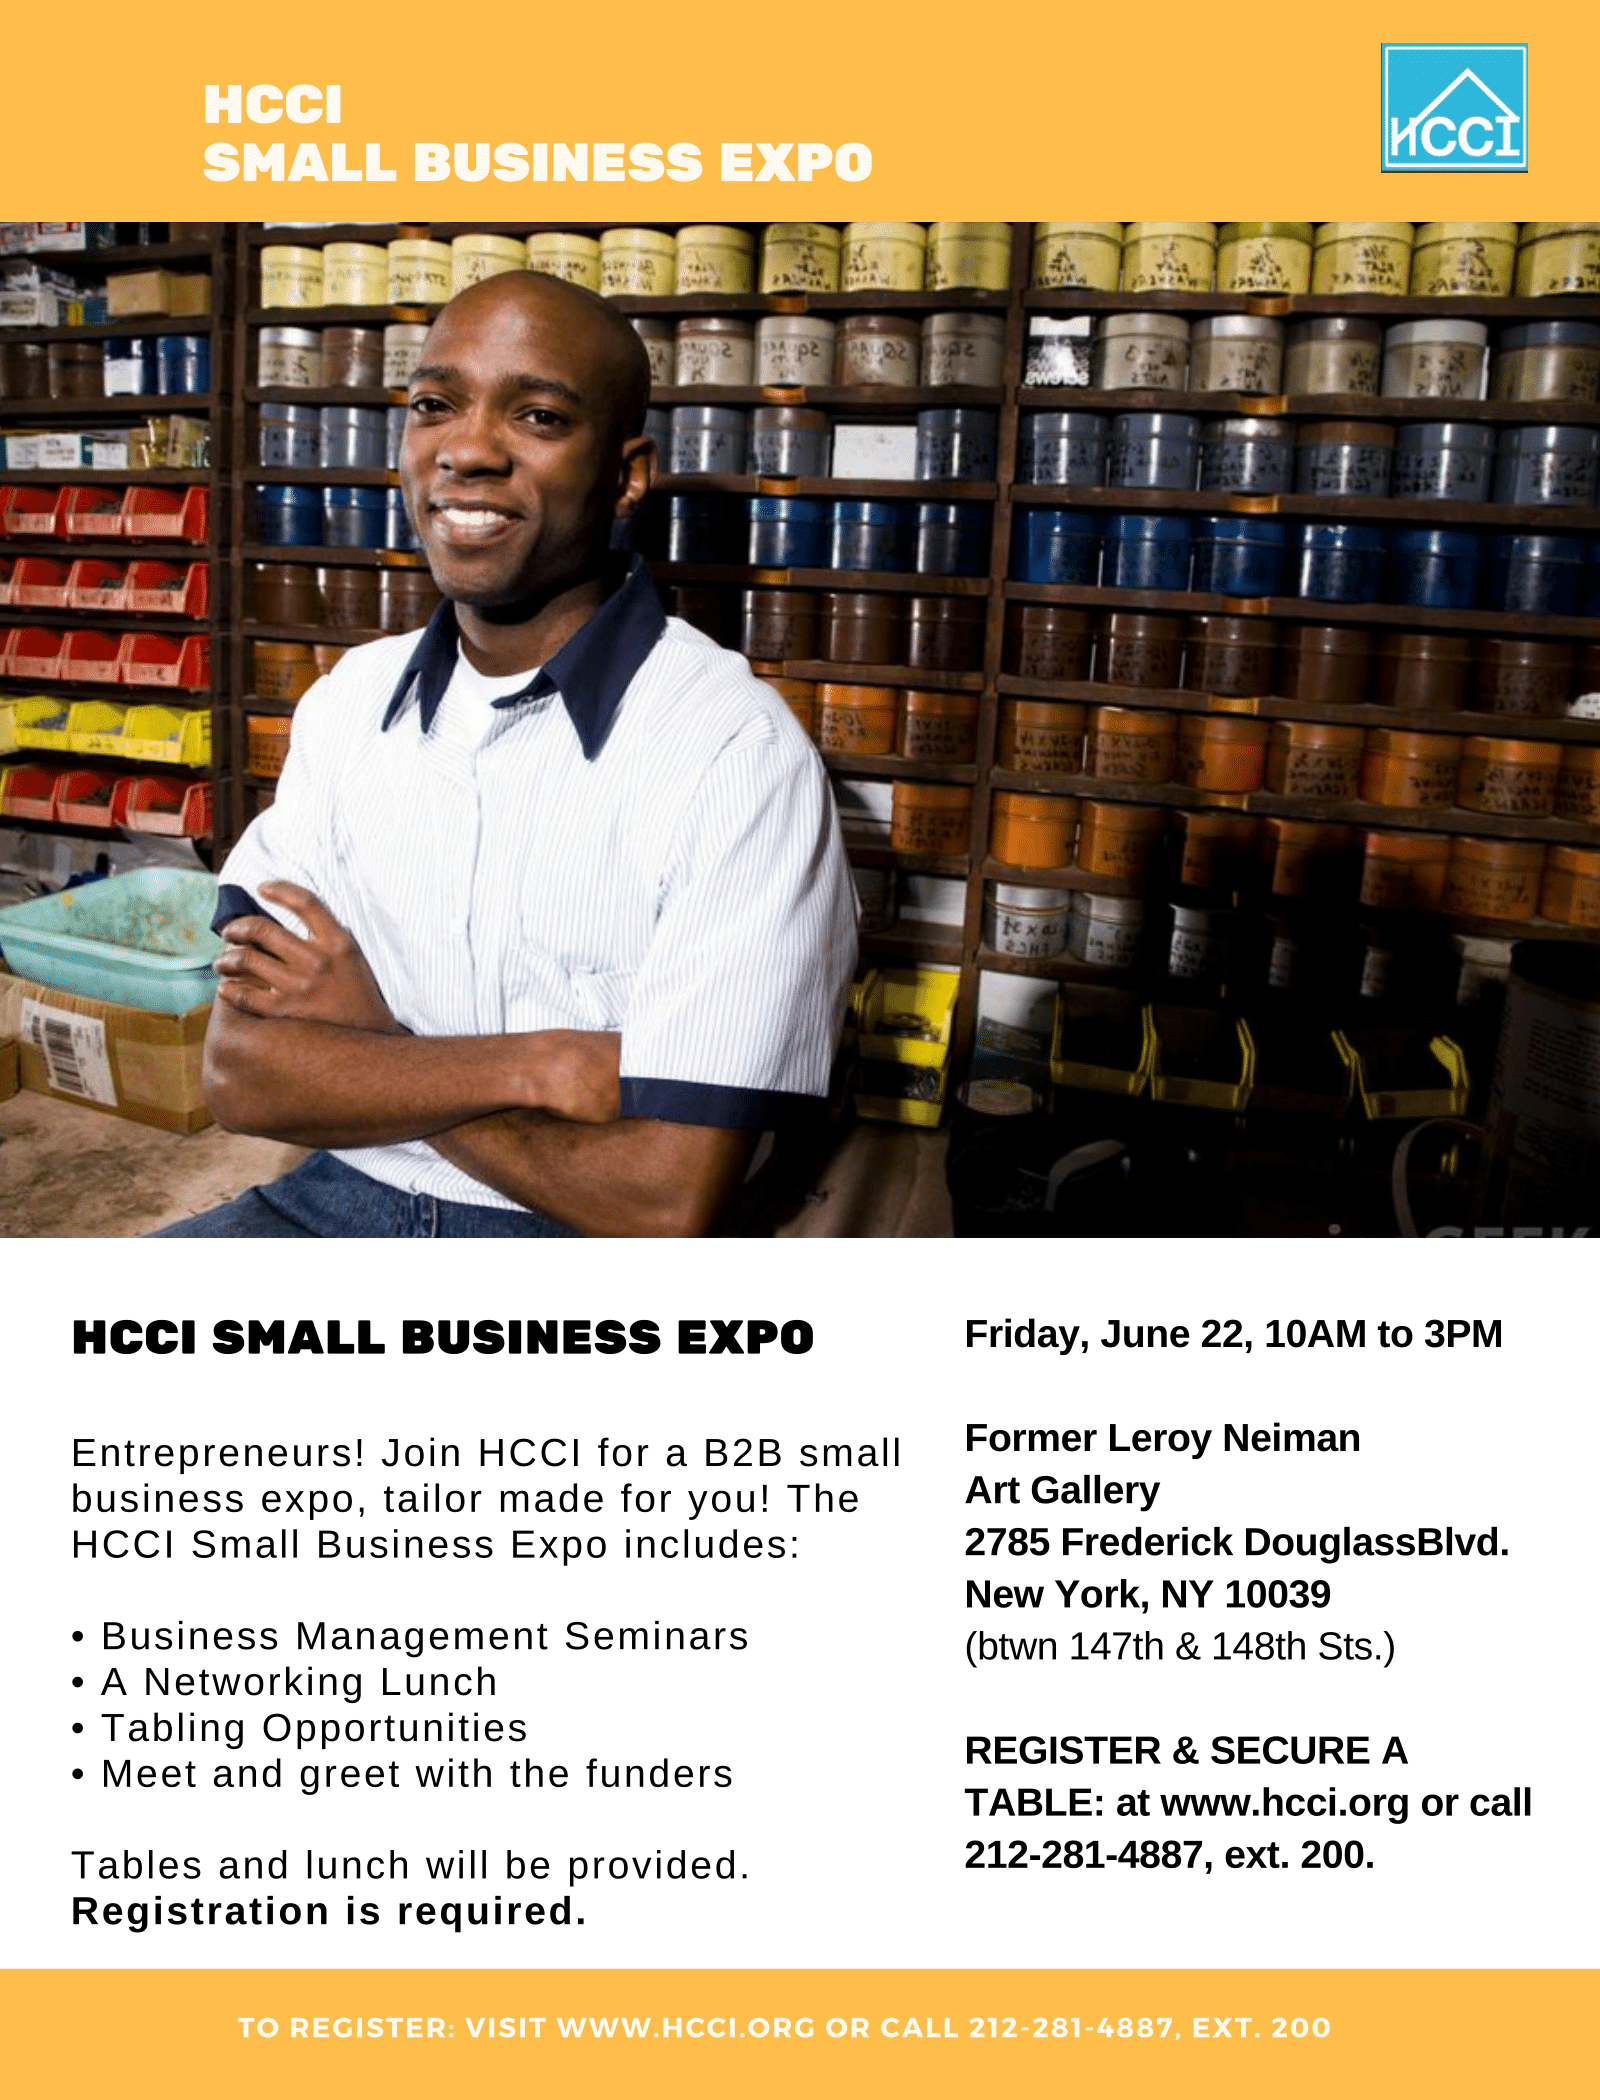 HCCI Small Business Expo